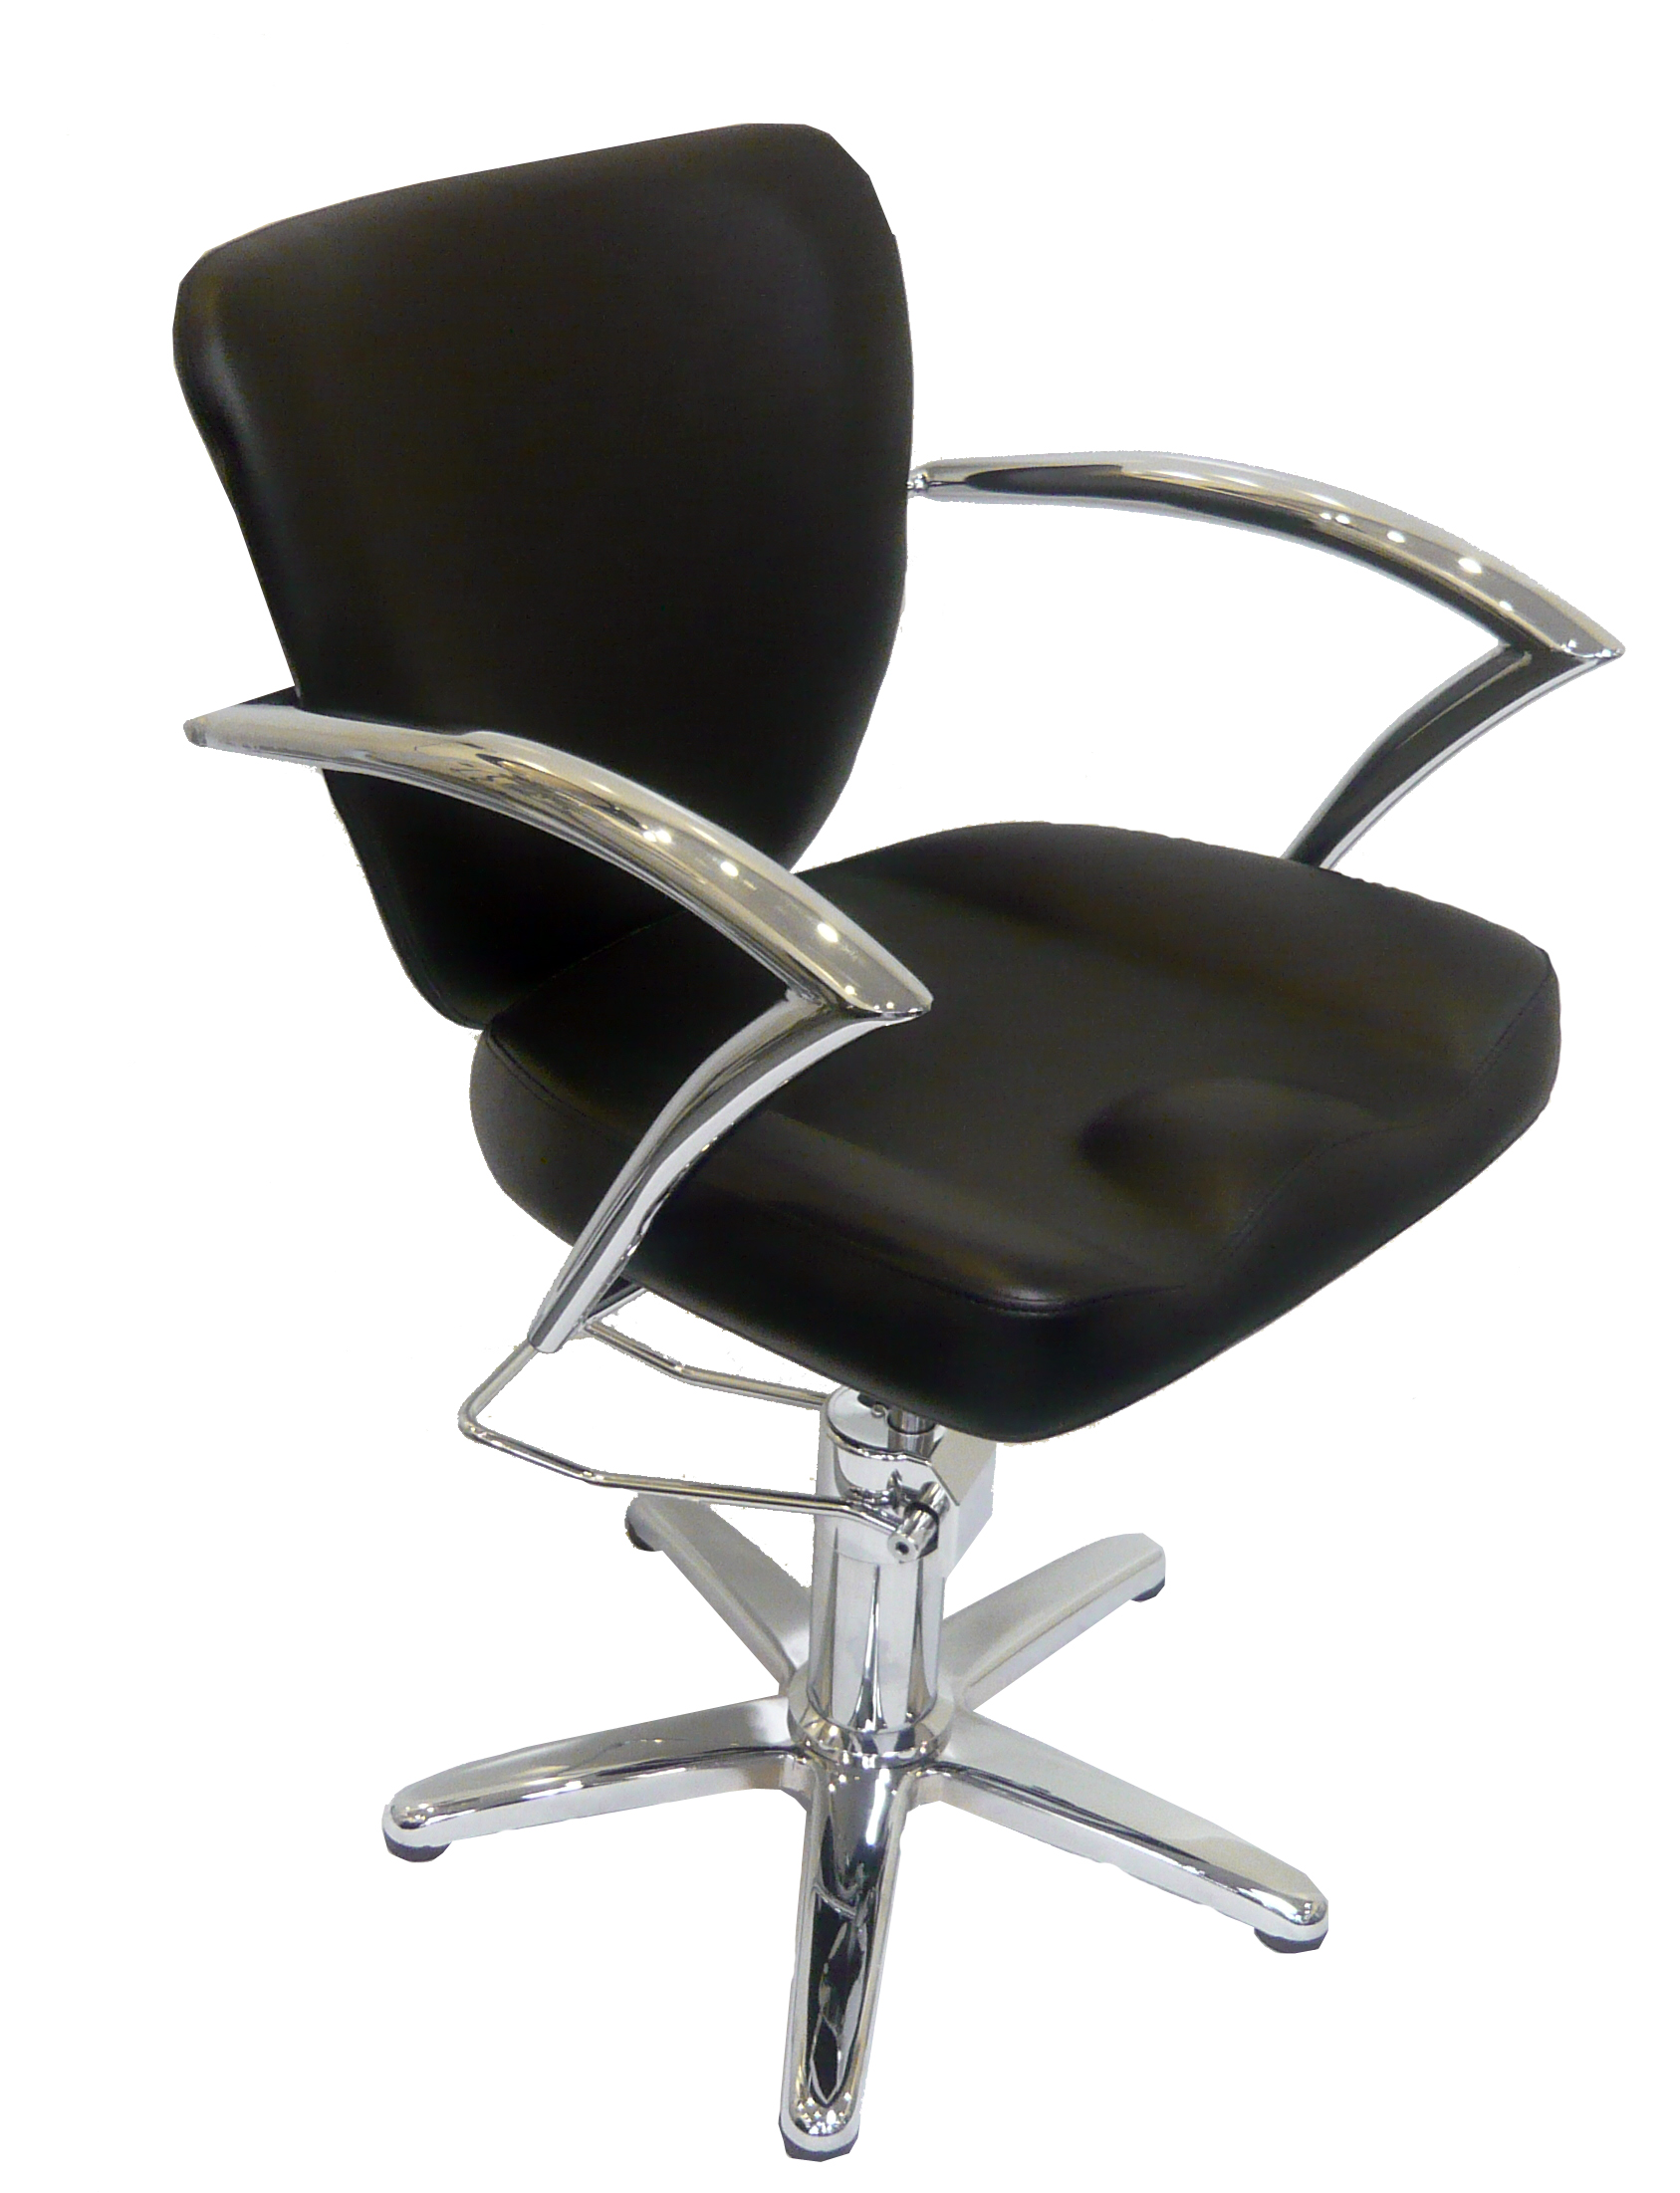 Hydraulic Lift Chairs : Hair beauty warehouse emily hydraulic styling chair